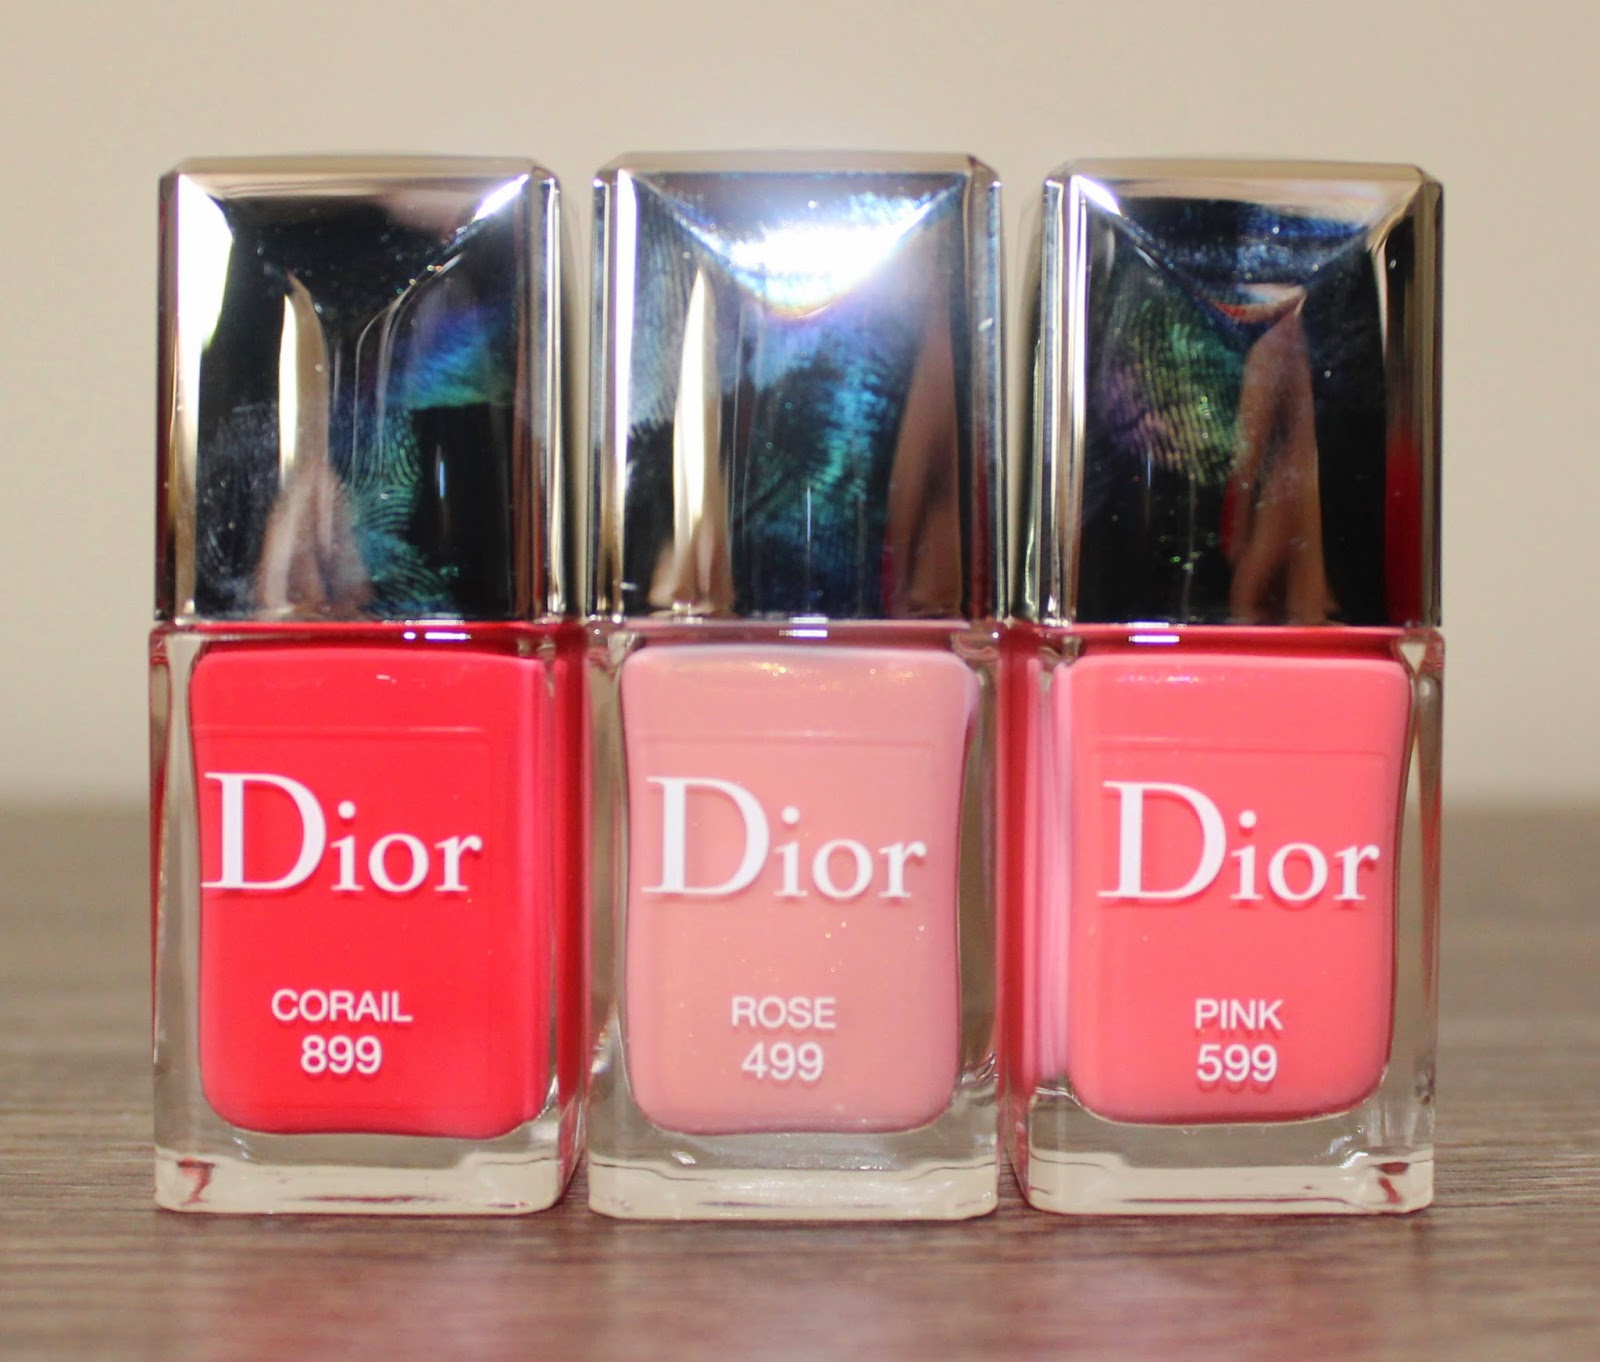 Dior Vernis Spring 2015 in Rose, Pink & Corail